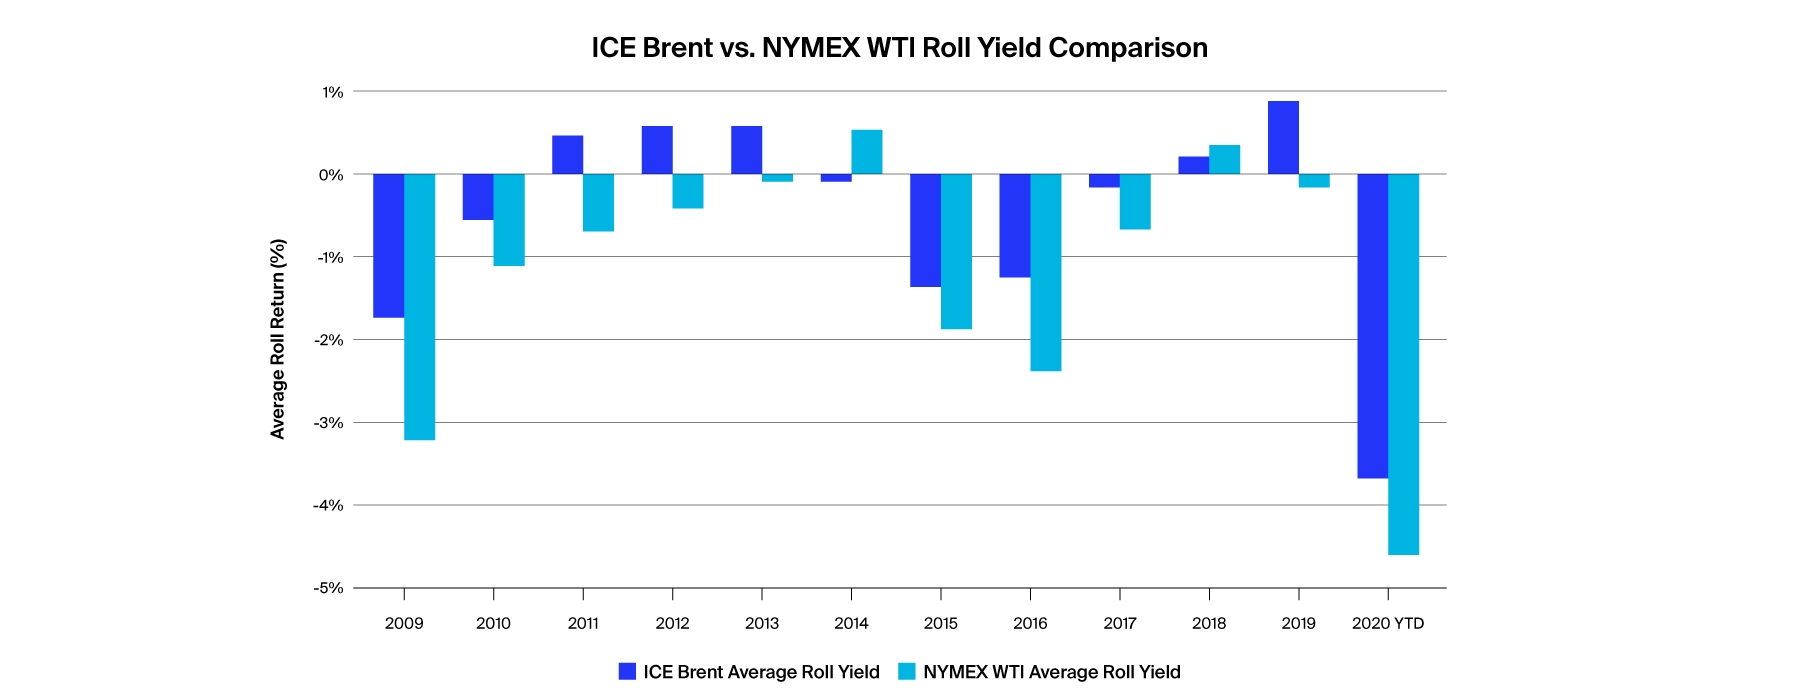 what are the differences between ice brent and nymex wti